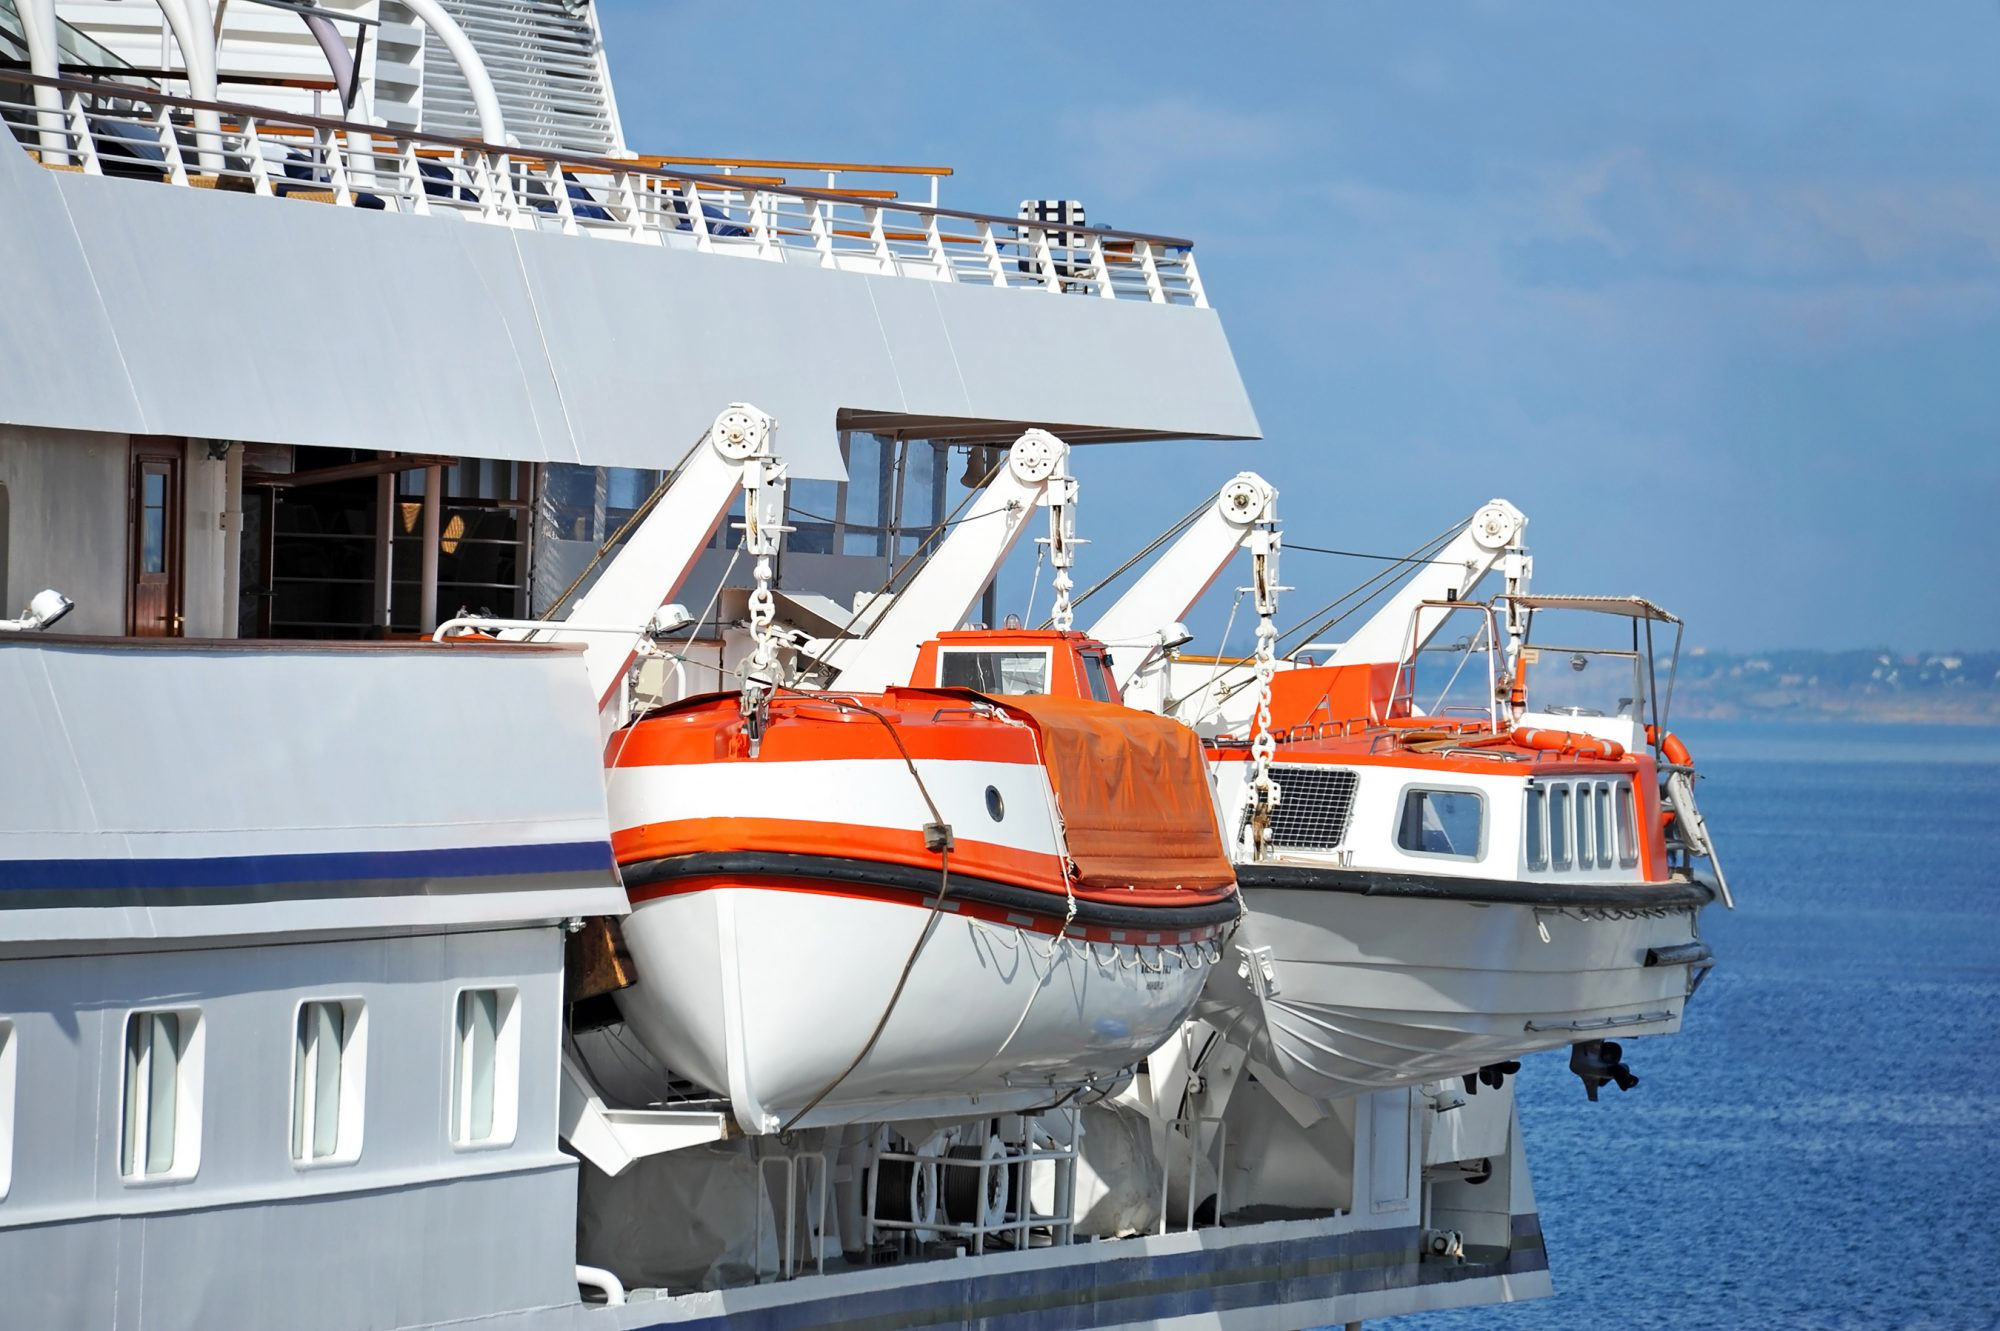 Lifeboat Drill Accidents